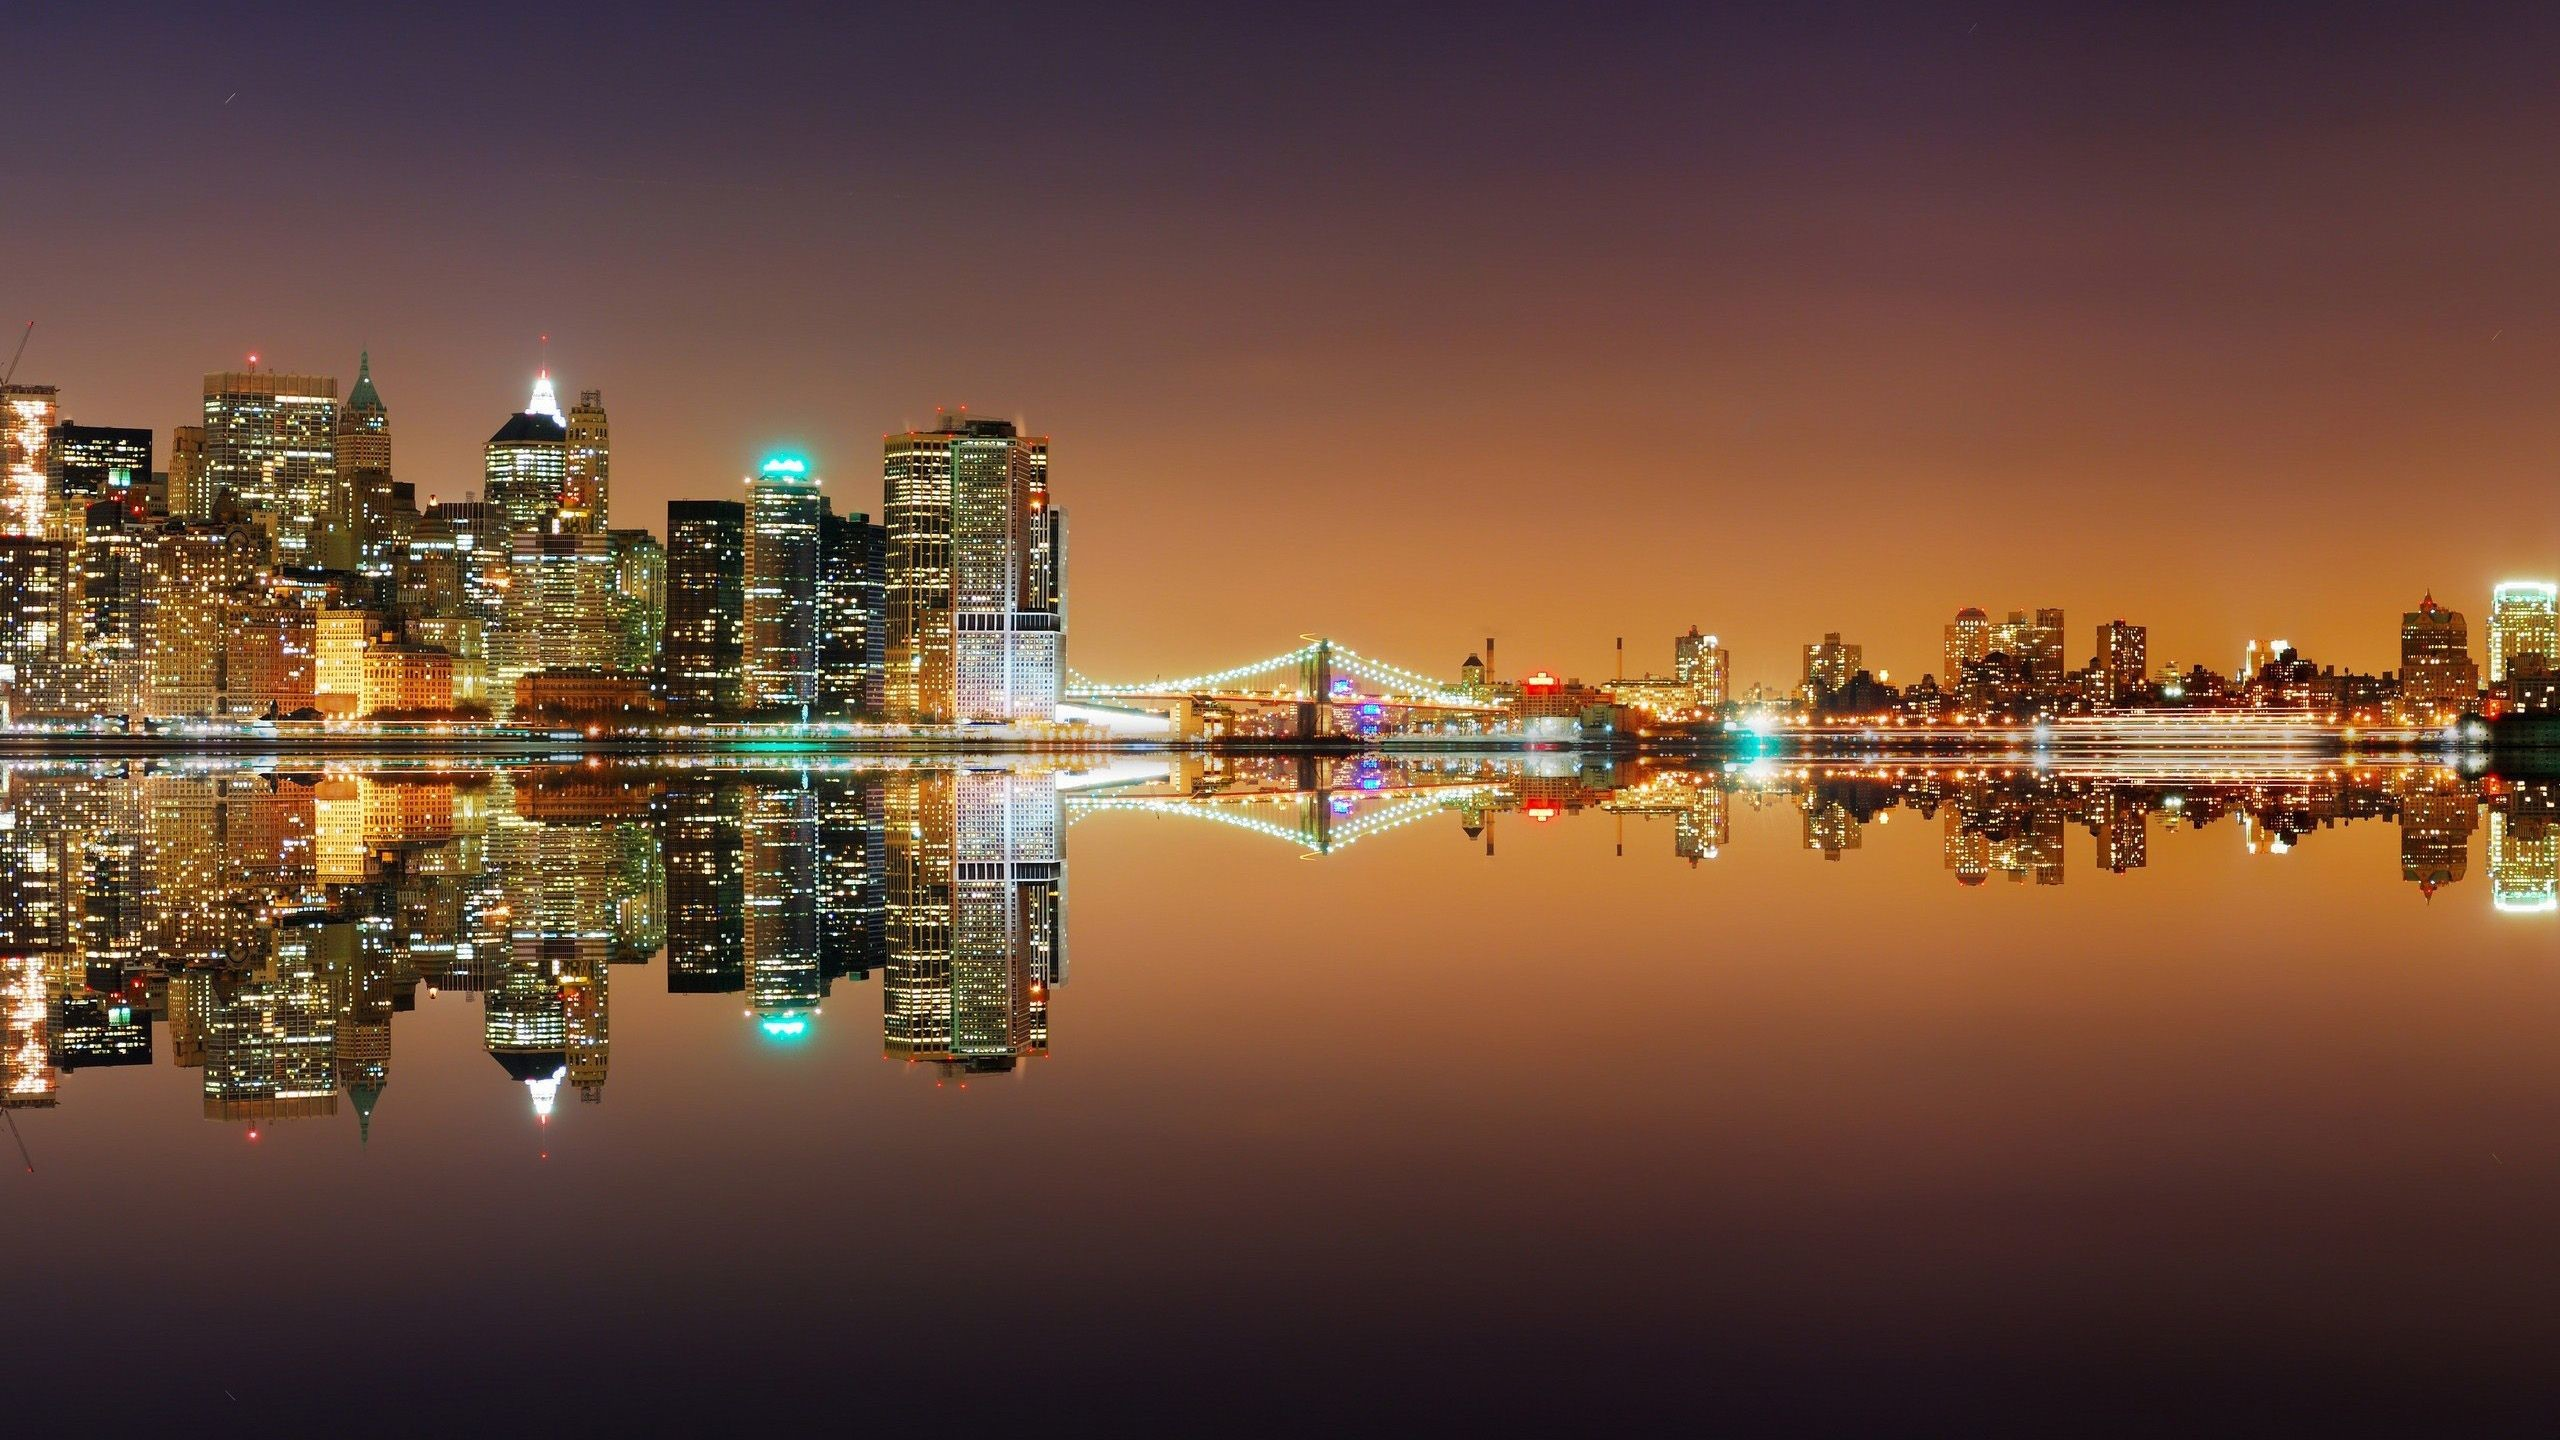 New York Skyline Reflection At Night wallpaper